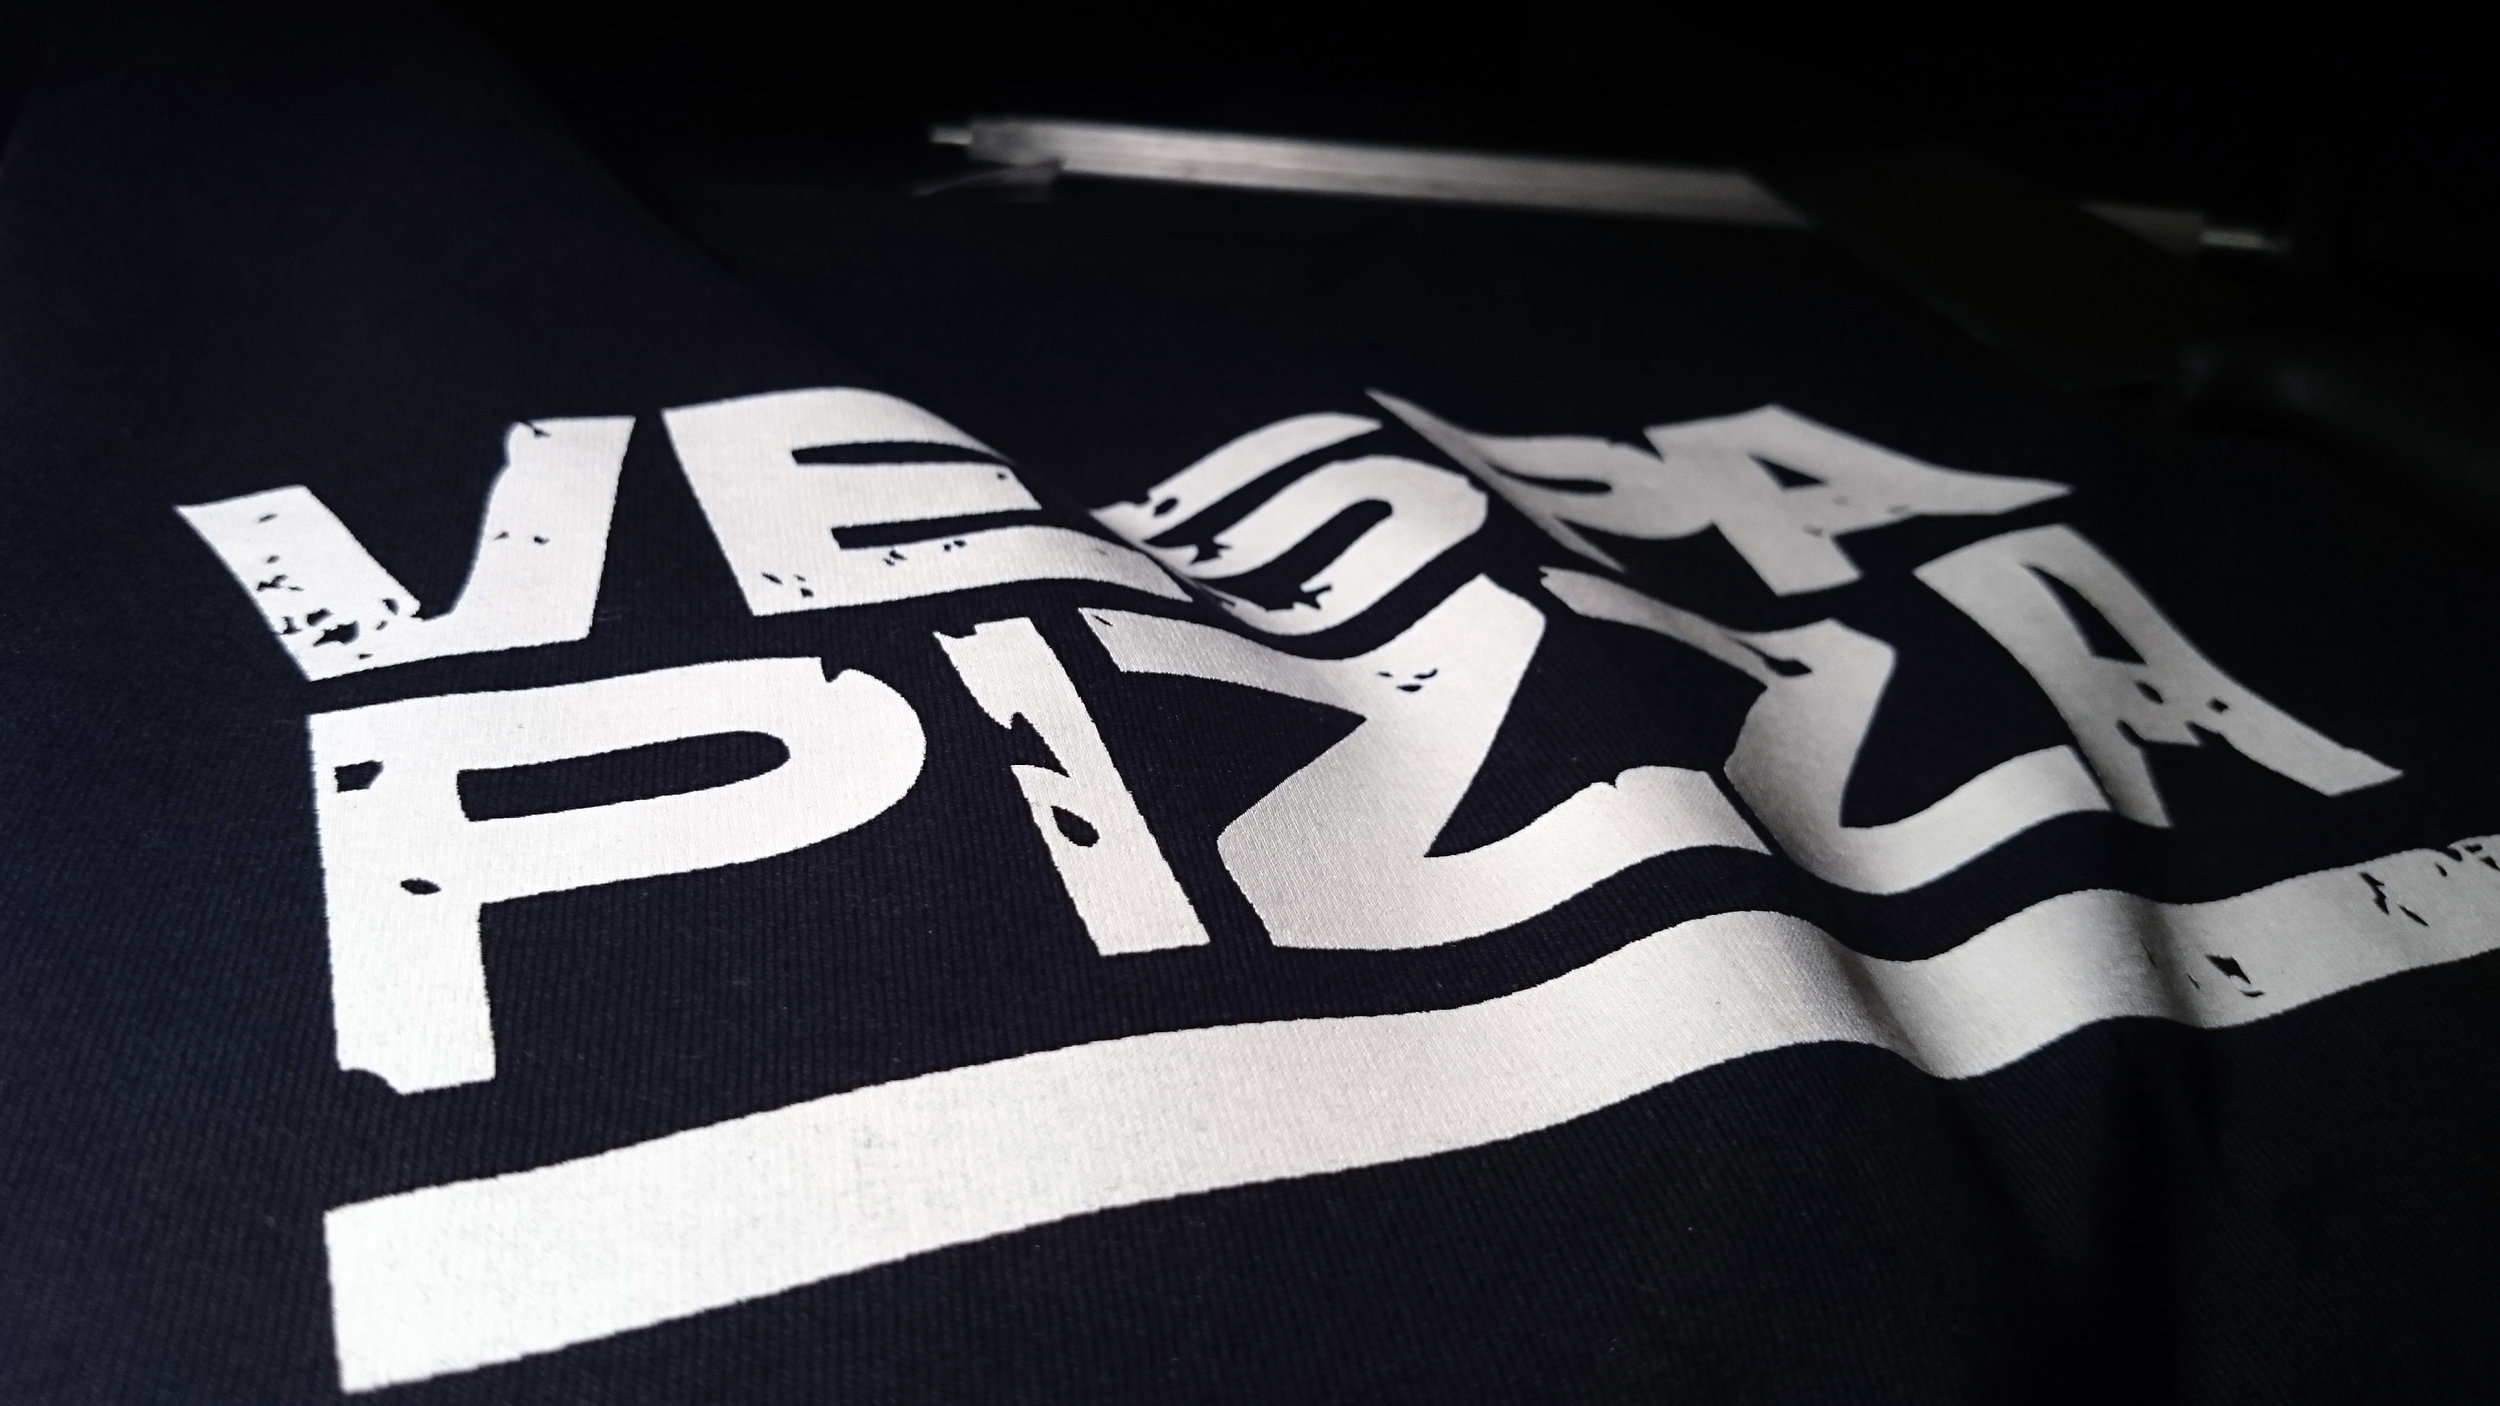 Screenprinting - Get screen-printed goods designed and delivered quickly including shirts, hats, & uniforms etc.We collaborate with VC Screen Printing to bring you the highest quality at the best price.